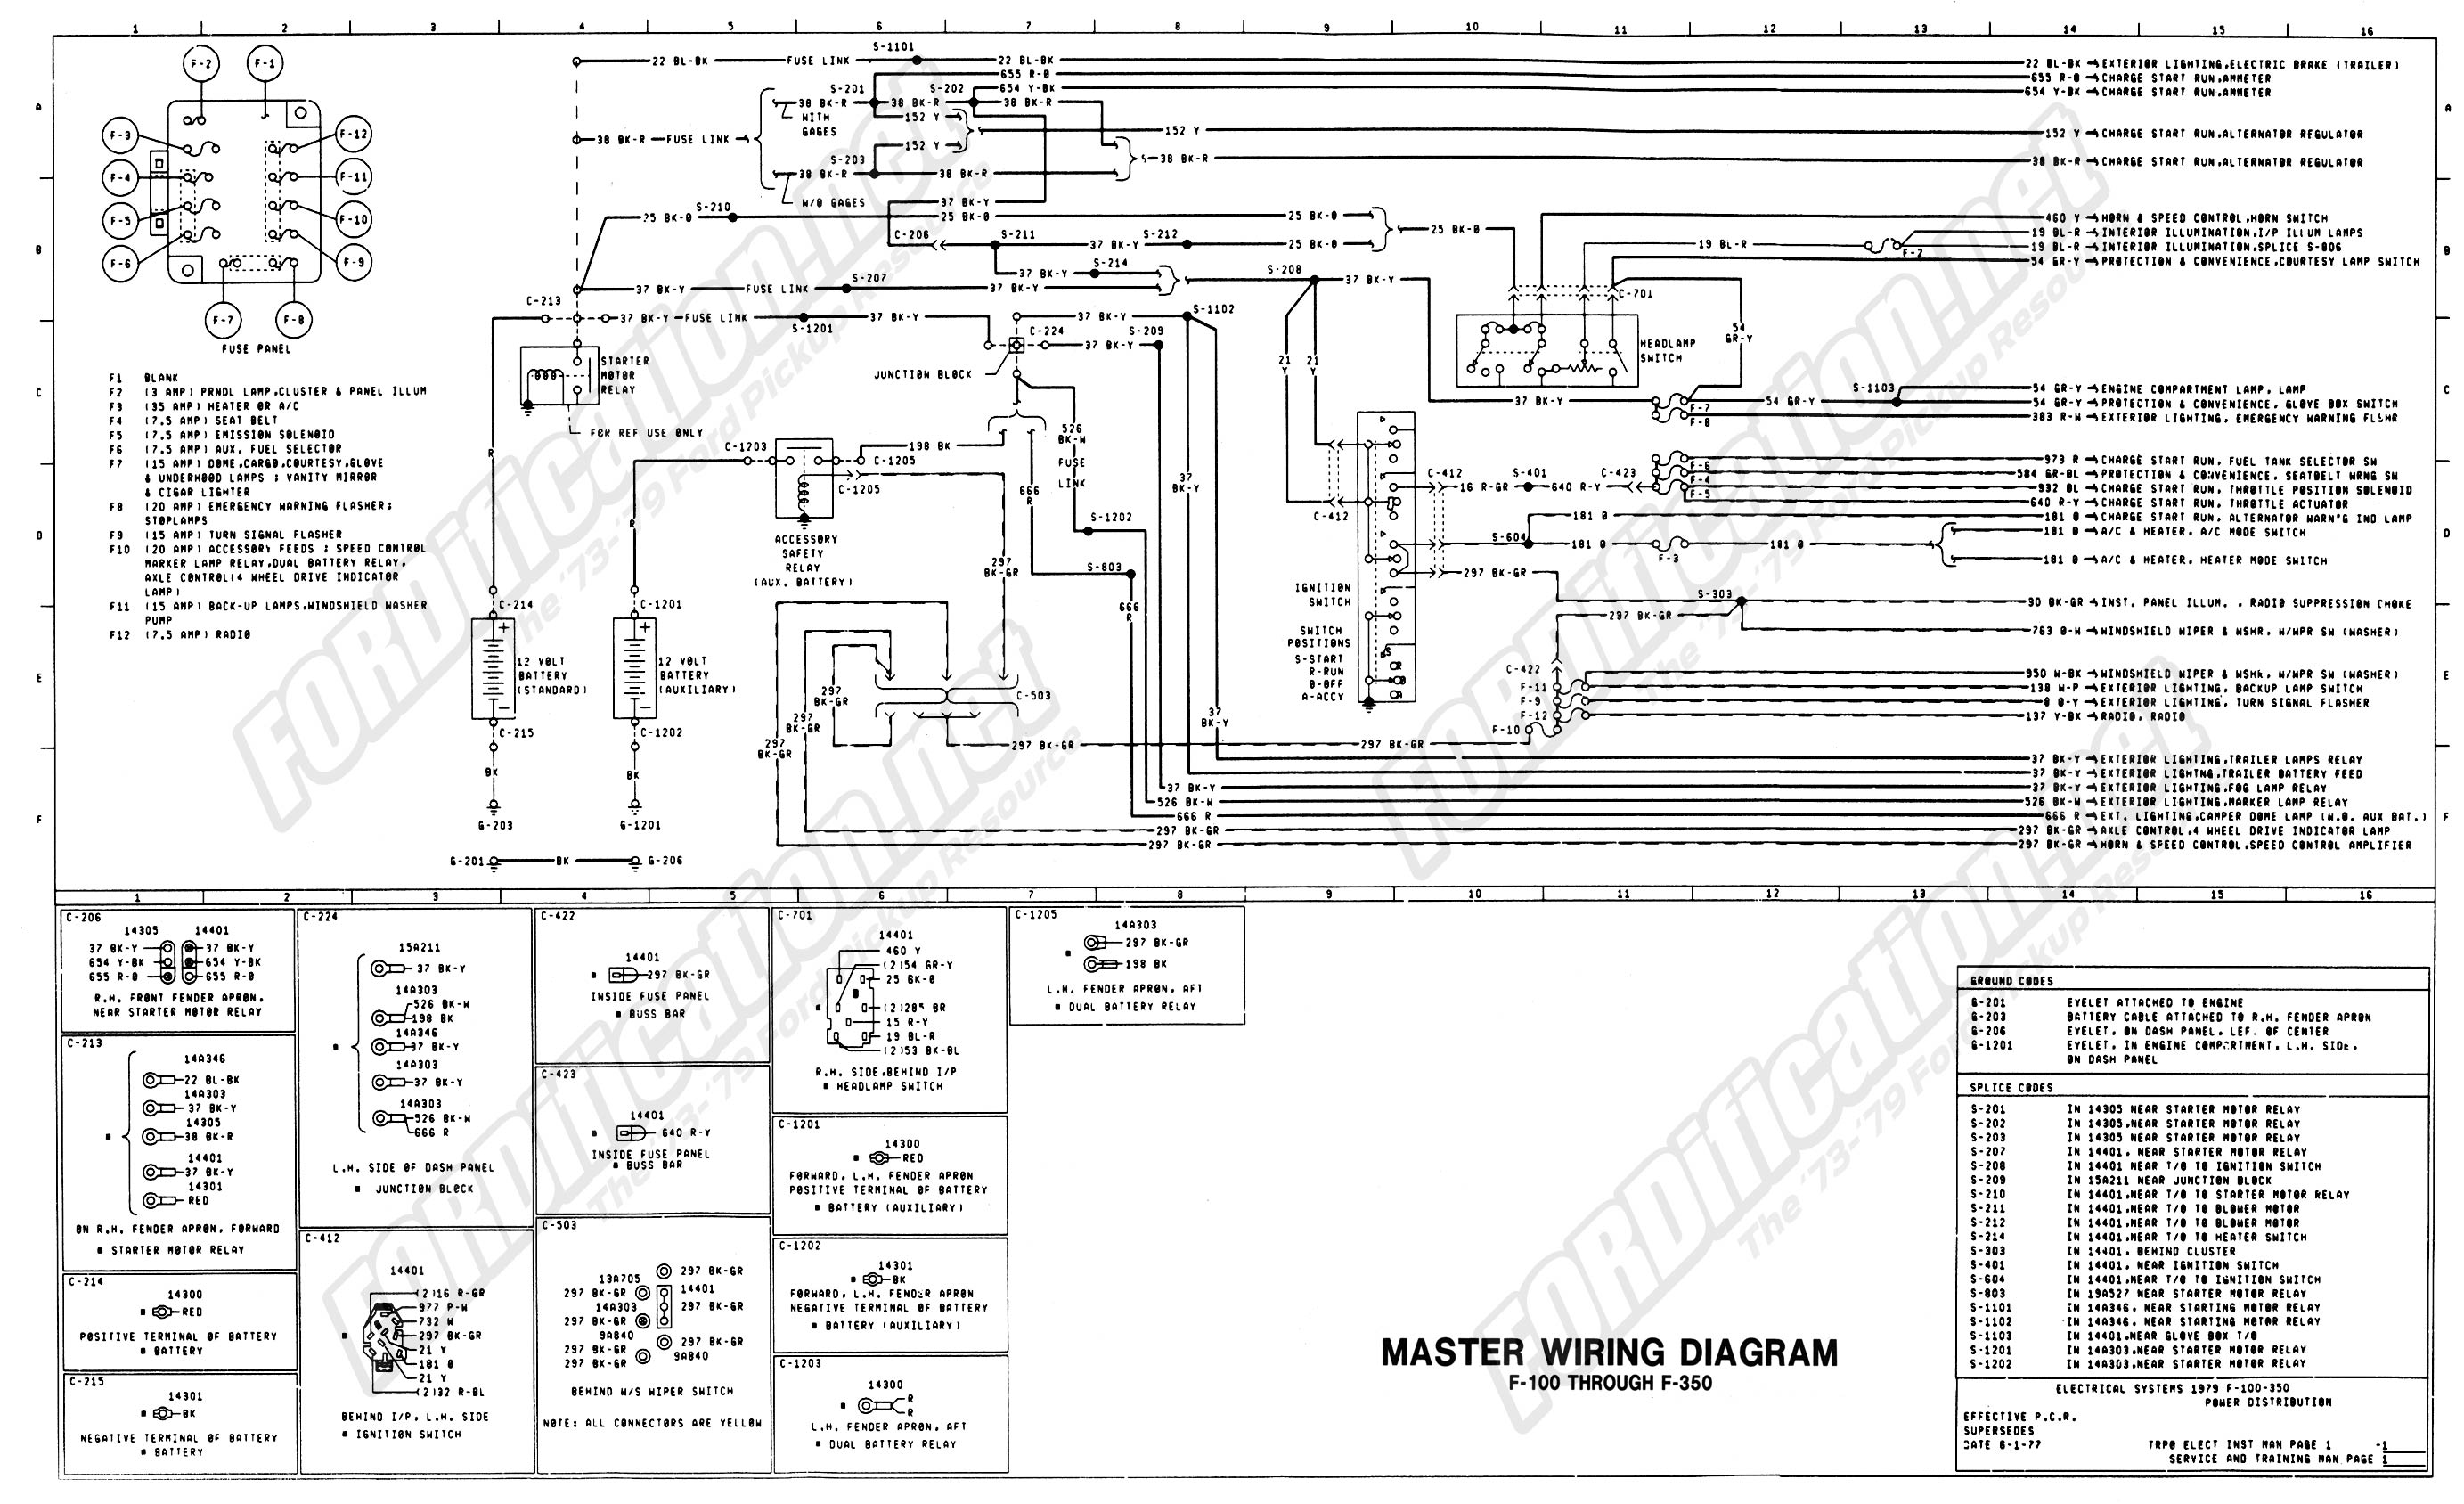 wiring_79master_1of9 1973 1979 ford truck wiring diagrams & schematics fordification net ford truck wiring diagrams free at edmiracle.co